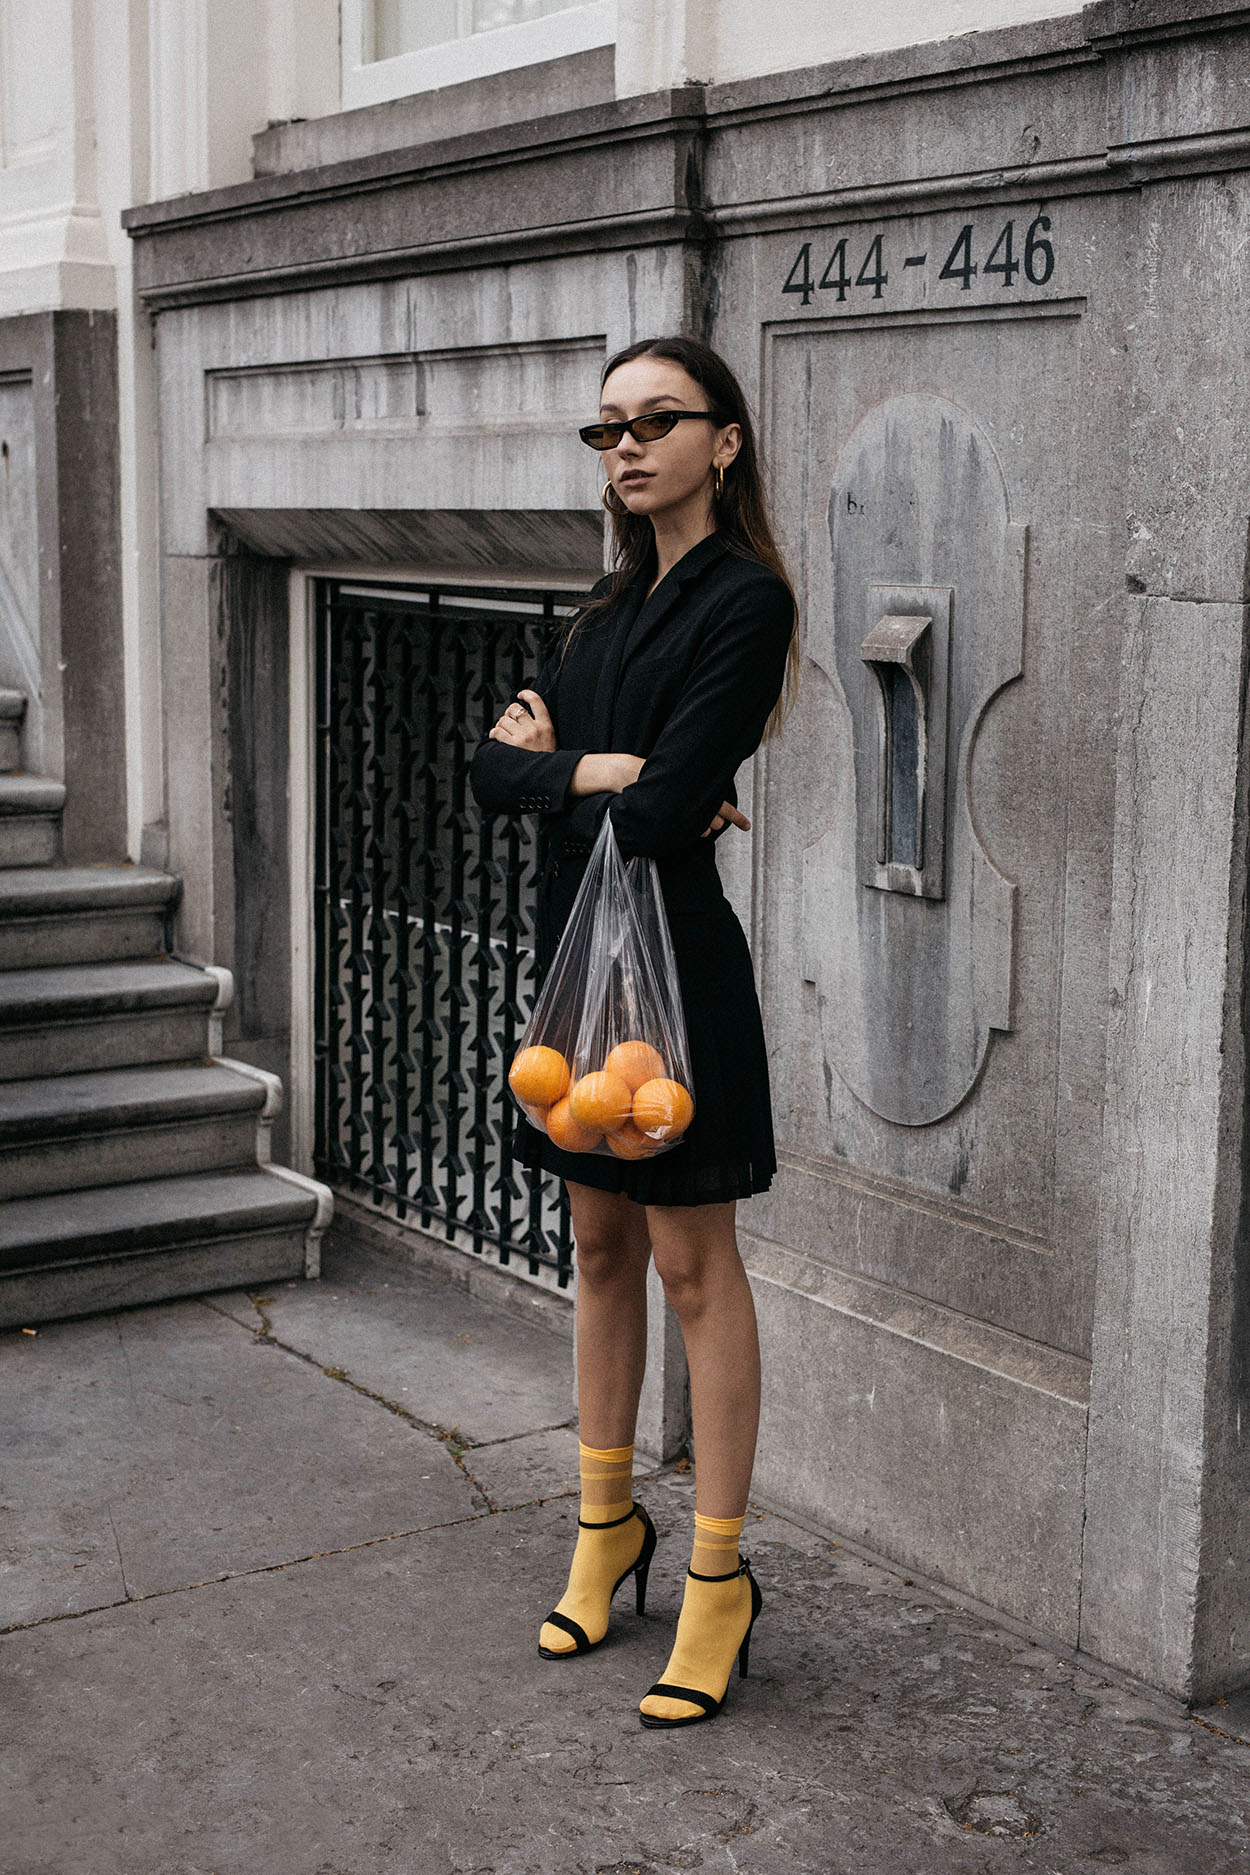 Bright-yellow-socks-with-Mai-Piu-Senza-strappy-sandals-trend-the-kooples-tuxedo-dress-balenciaga-2017-sunglasses-conceptual-editorial-outfit-ideas-thefashioncuisine-1